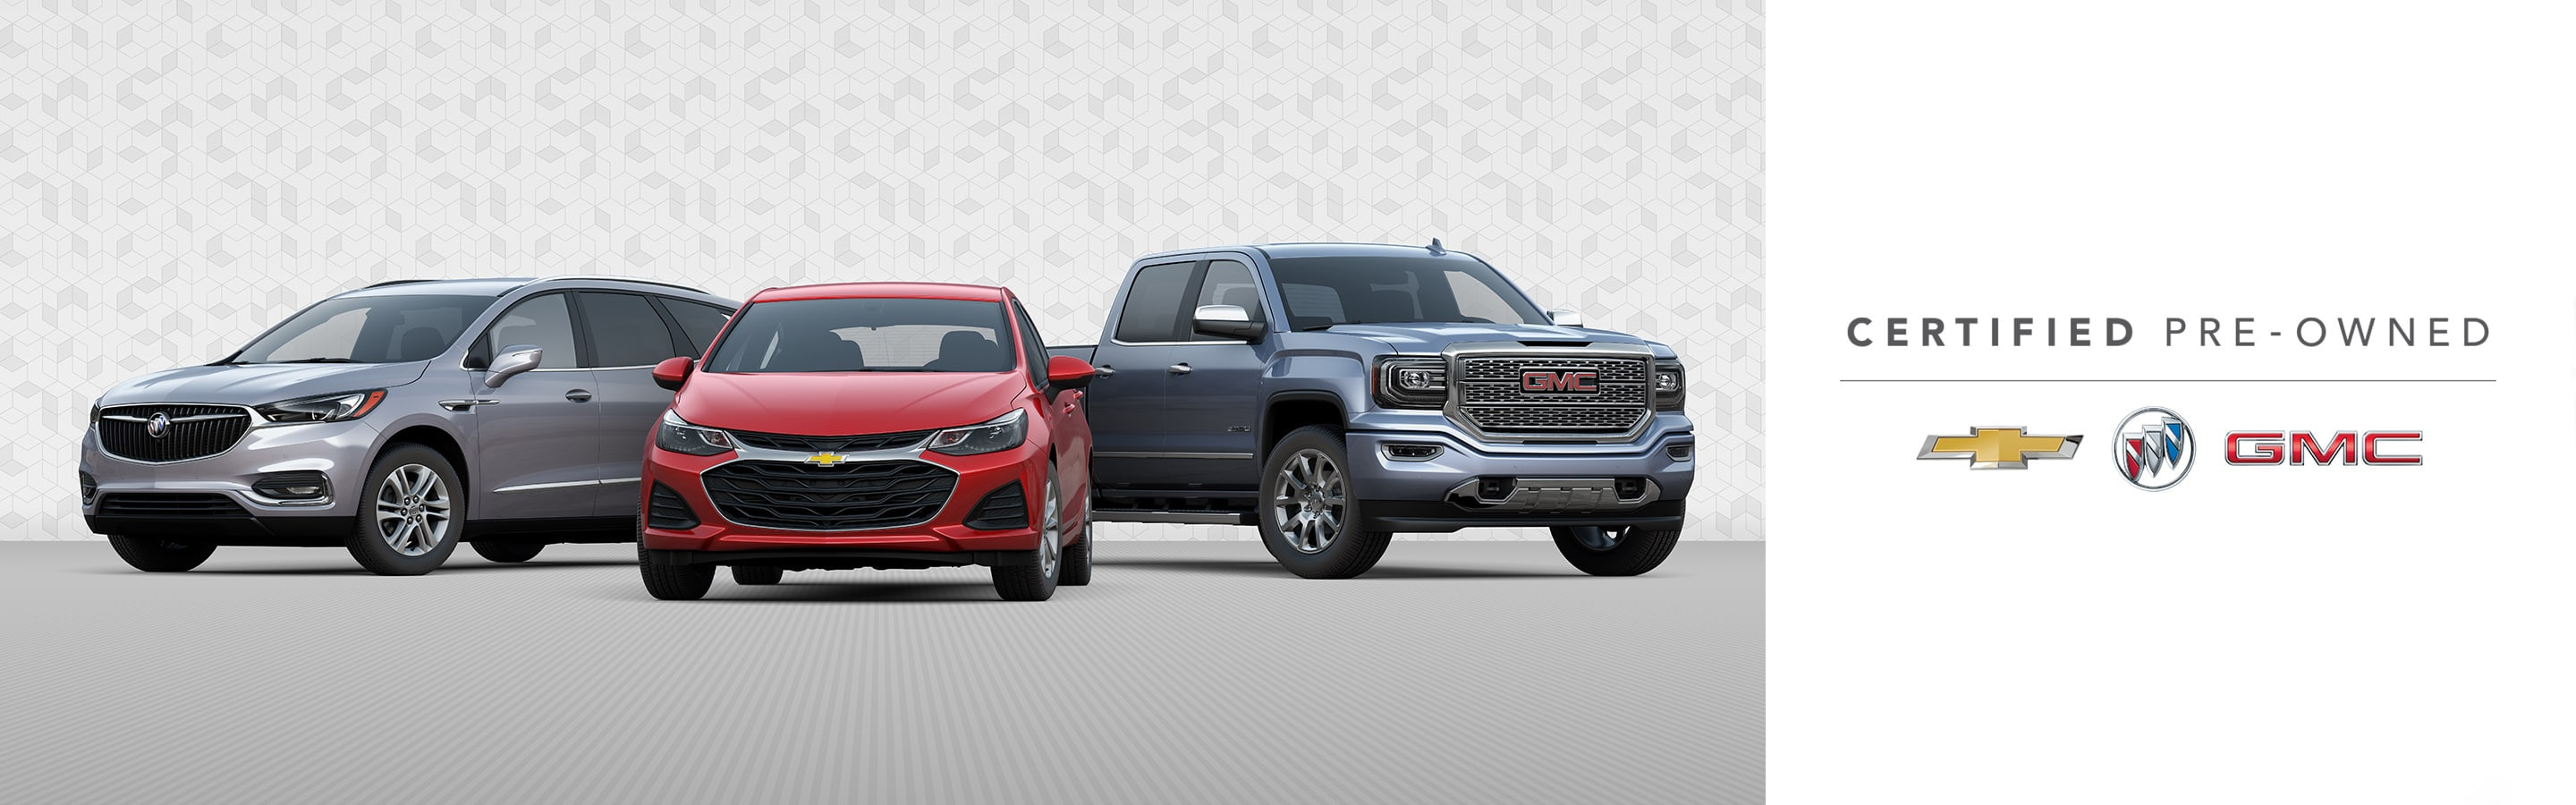 Buick, Chevrolet and GMC Certified Pre-Owned vehicles